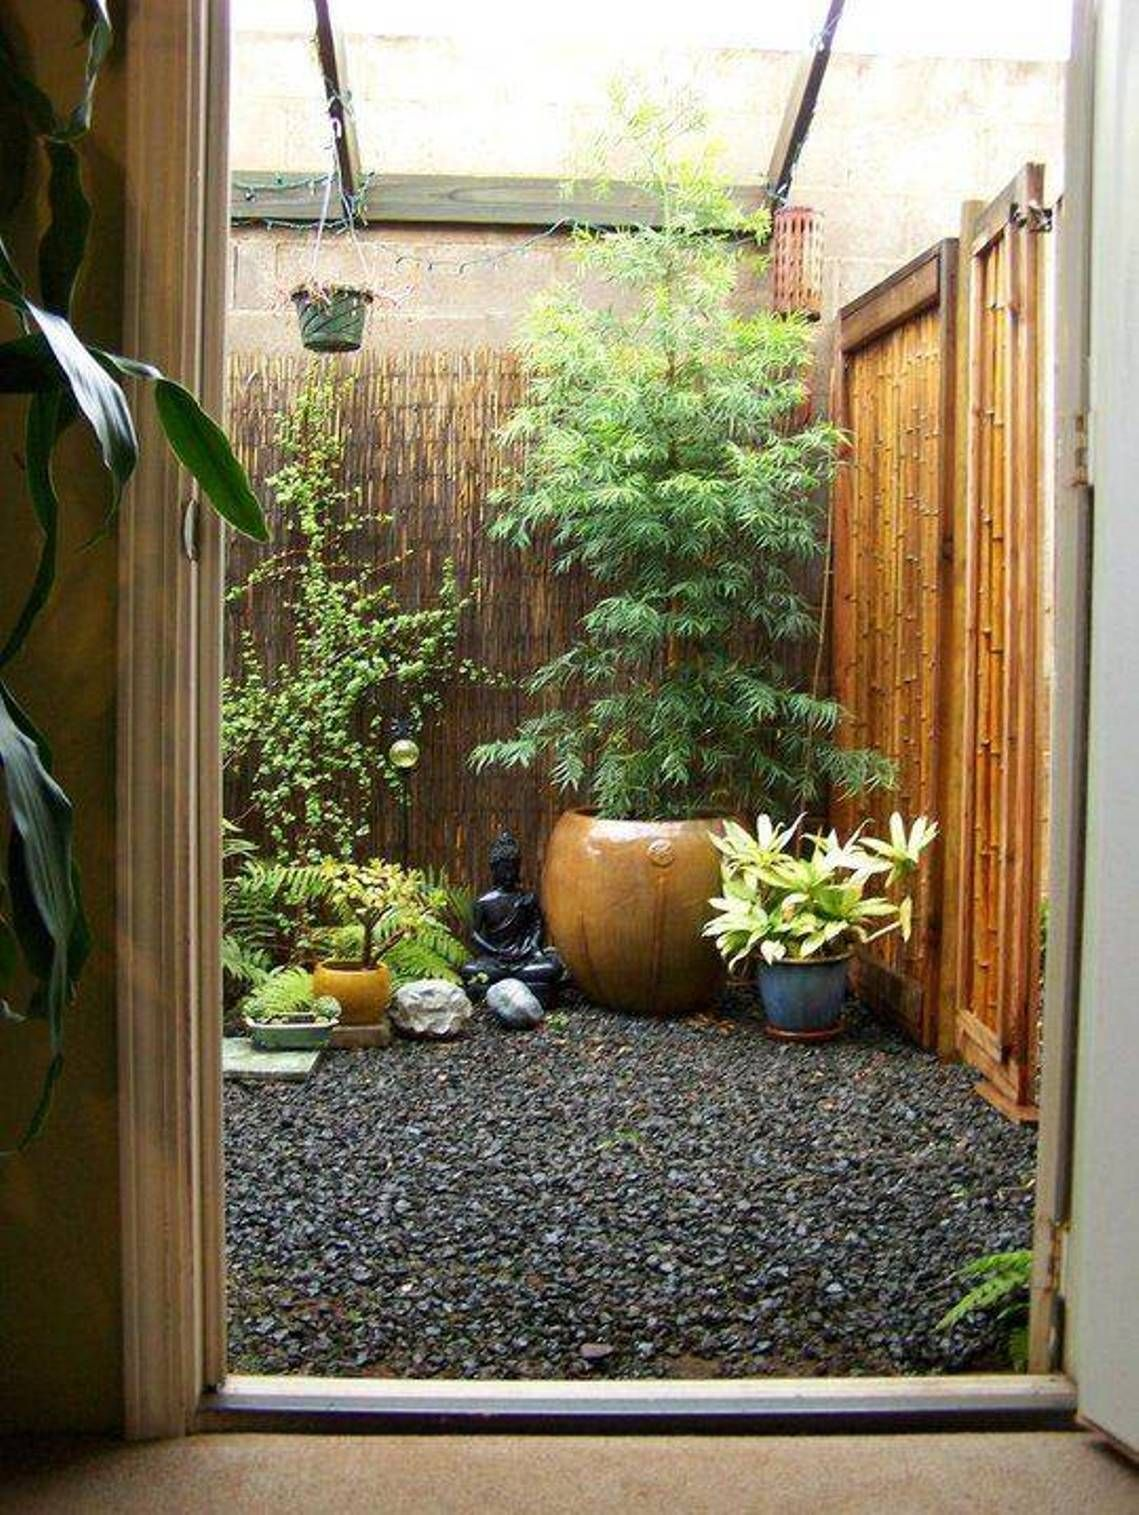 Small outdoor patio decorating ideas - Landscaping And Outdoor Building Small Patio Decorating Ideas Small Patio Decorating Ideas With Japanese